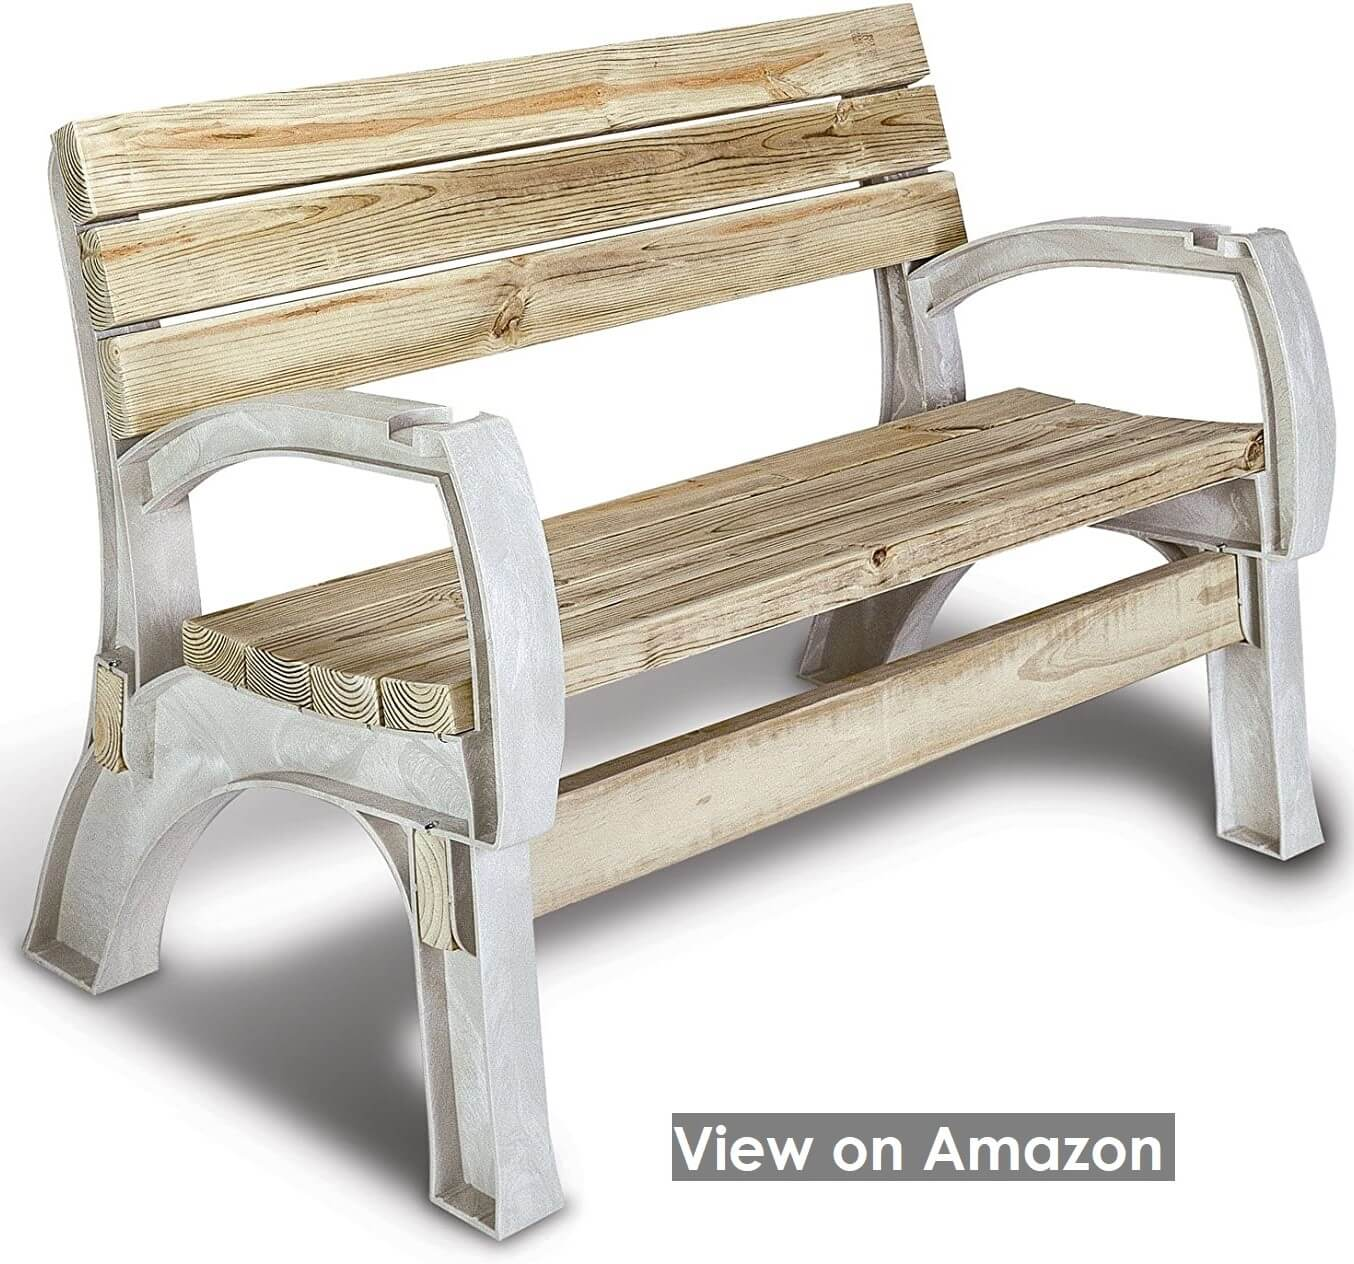 2x4basics outdoor bench